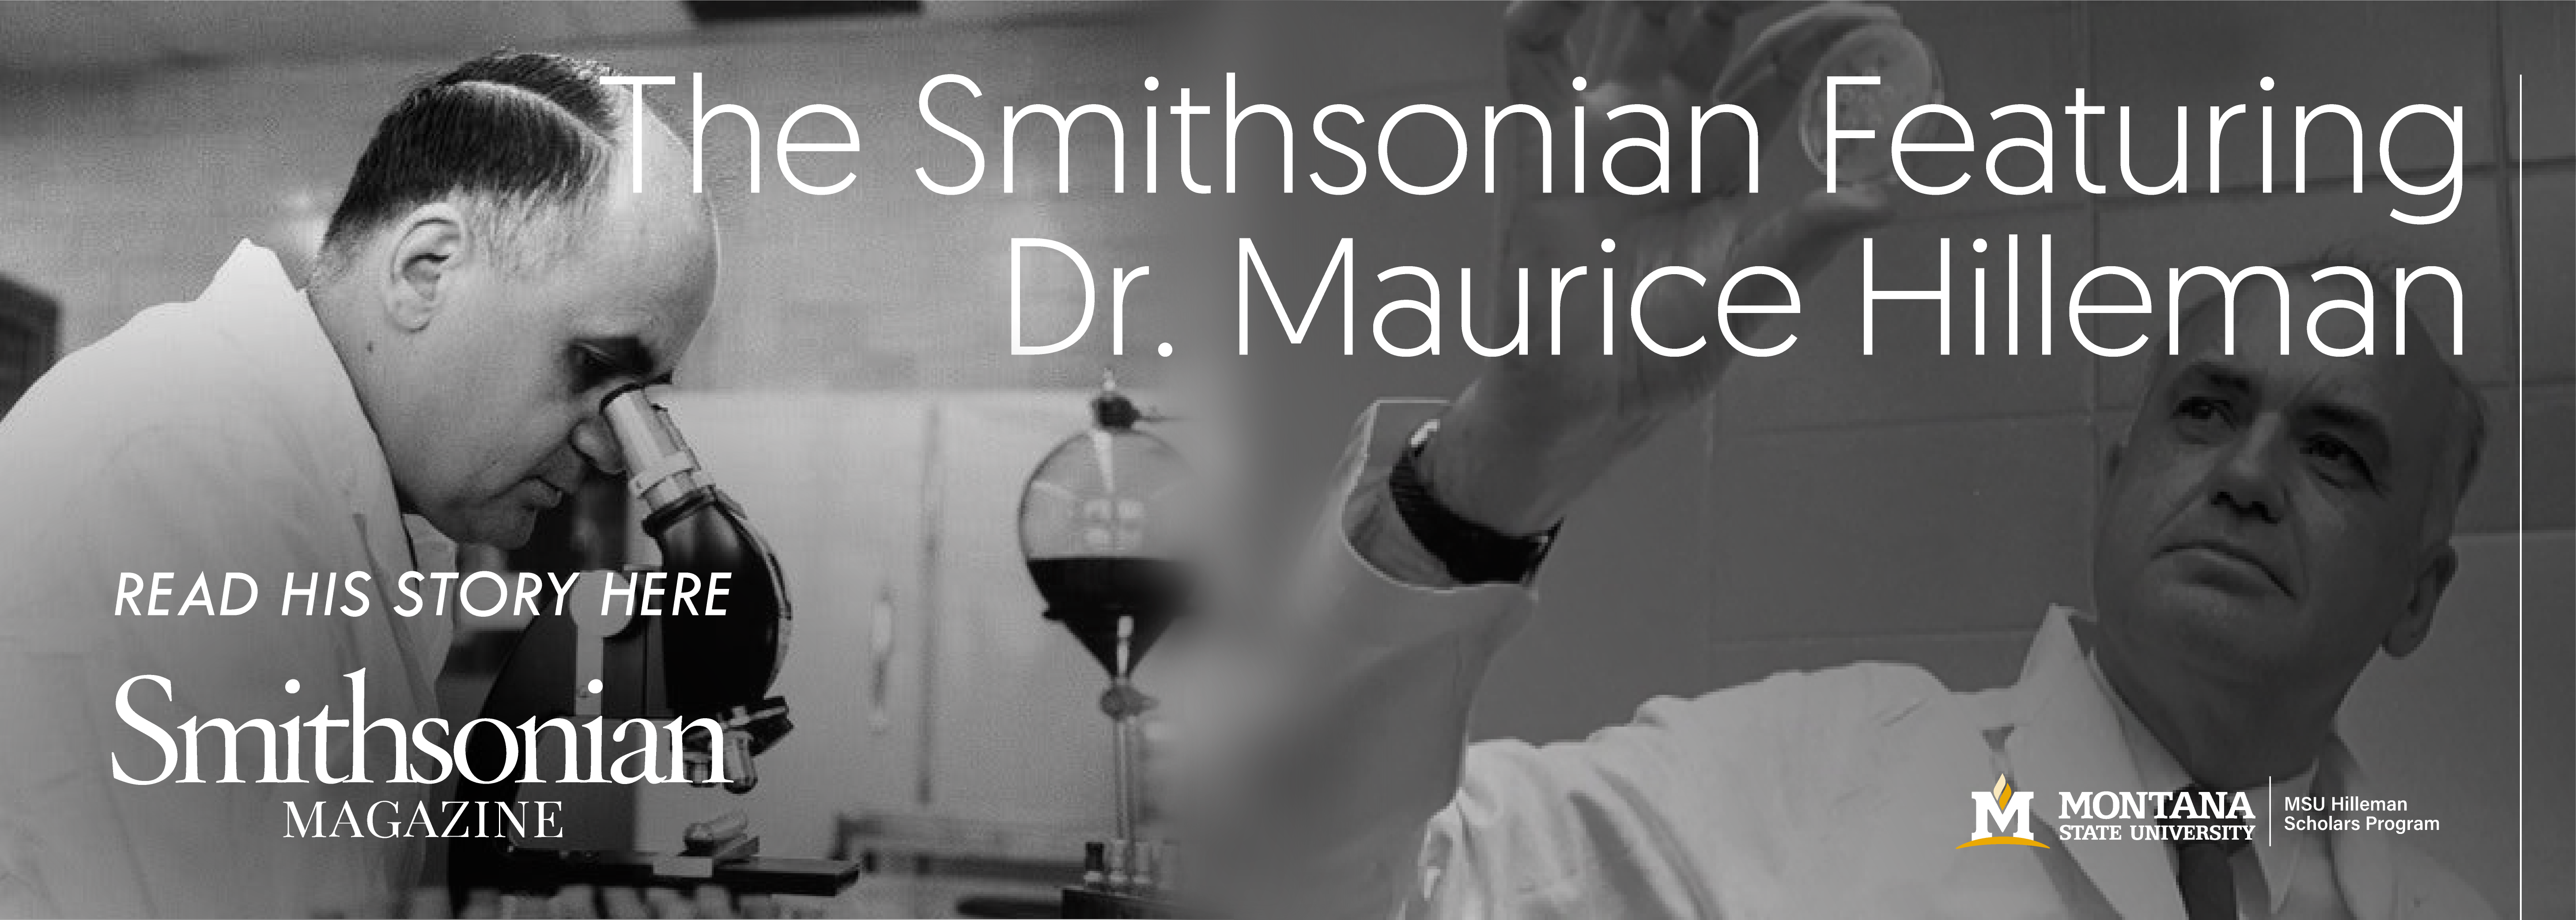 Dr. Hilleman Smithsonian Article